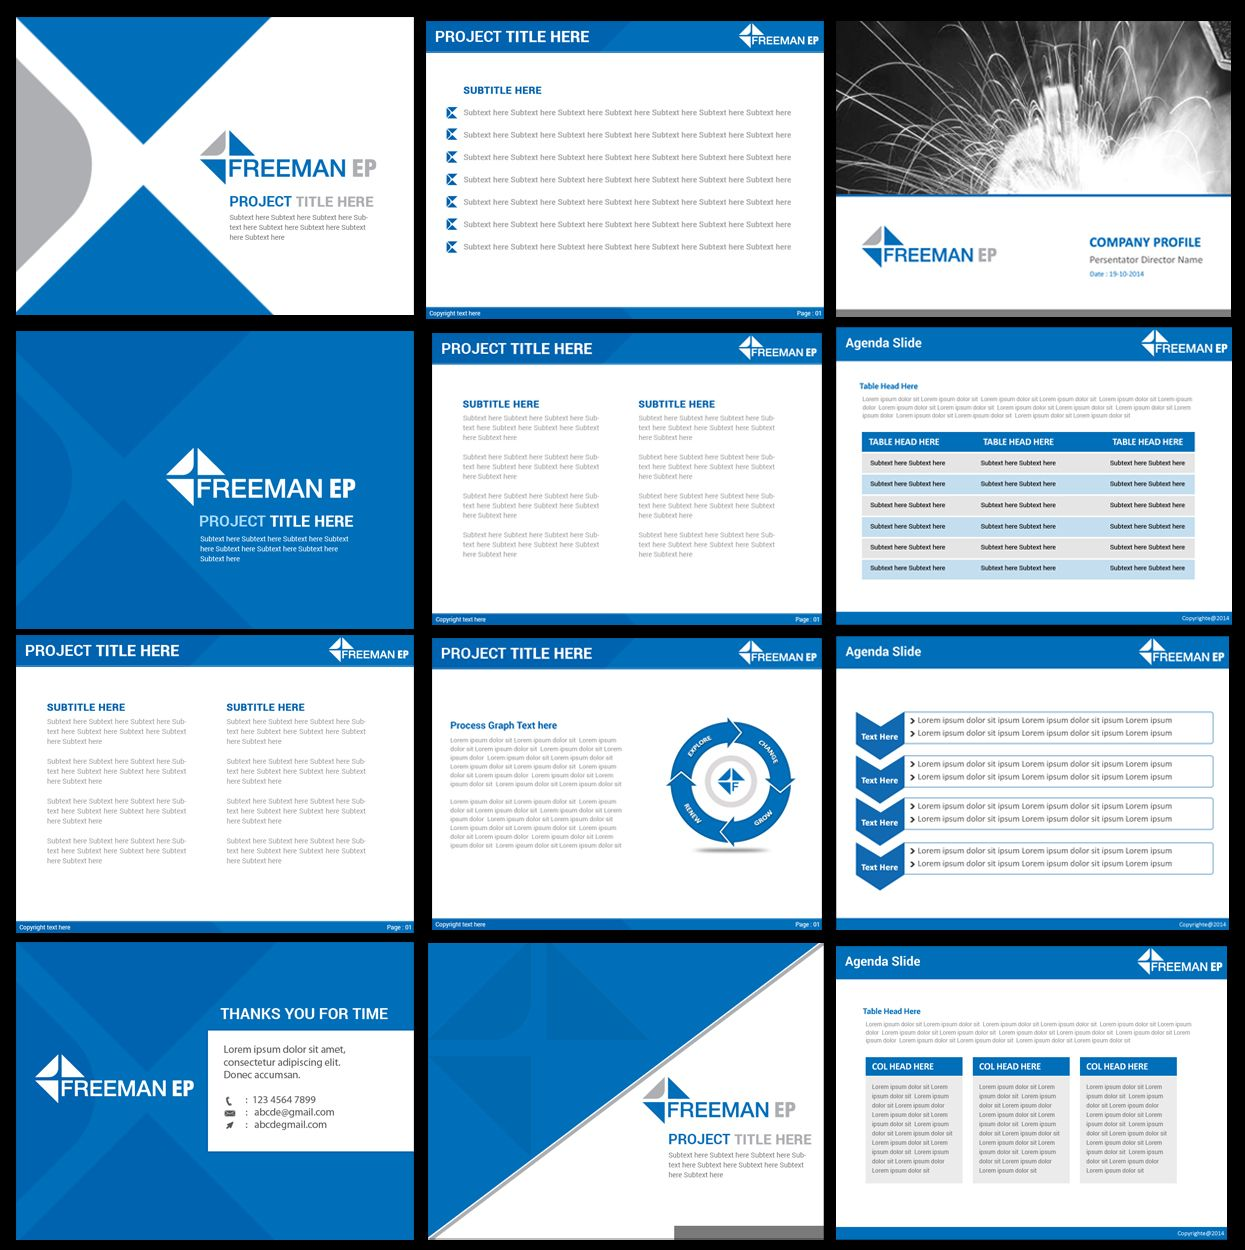 Designs For Powerpoint Free: Corporate Powerpoint Template Design